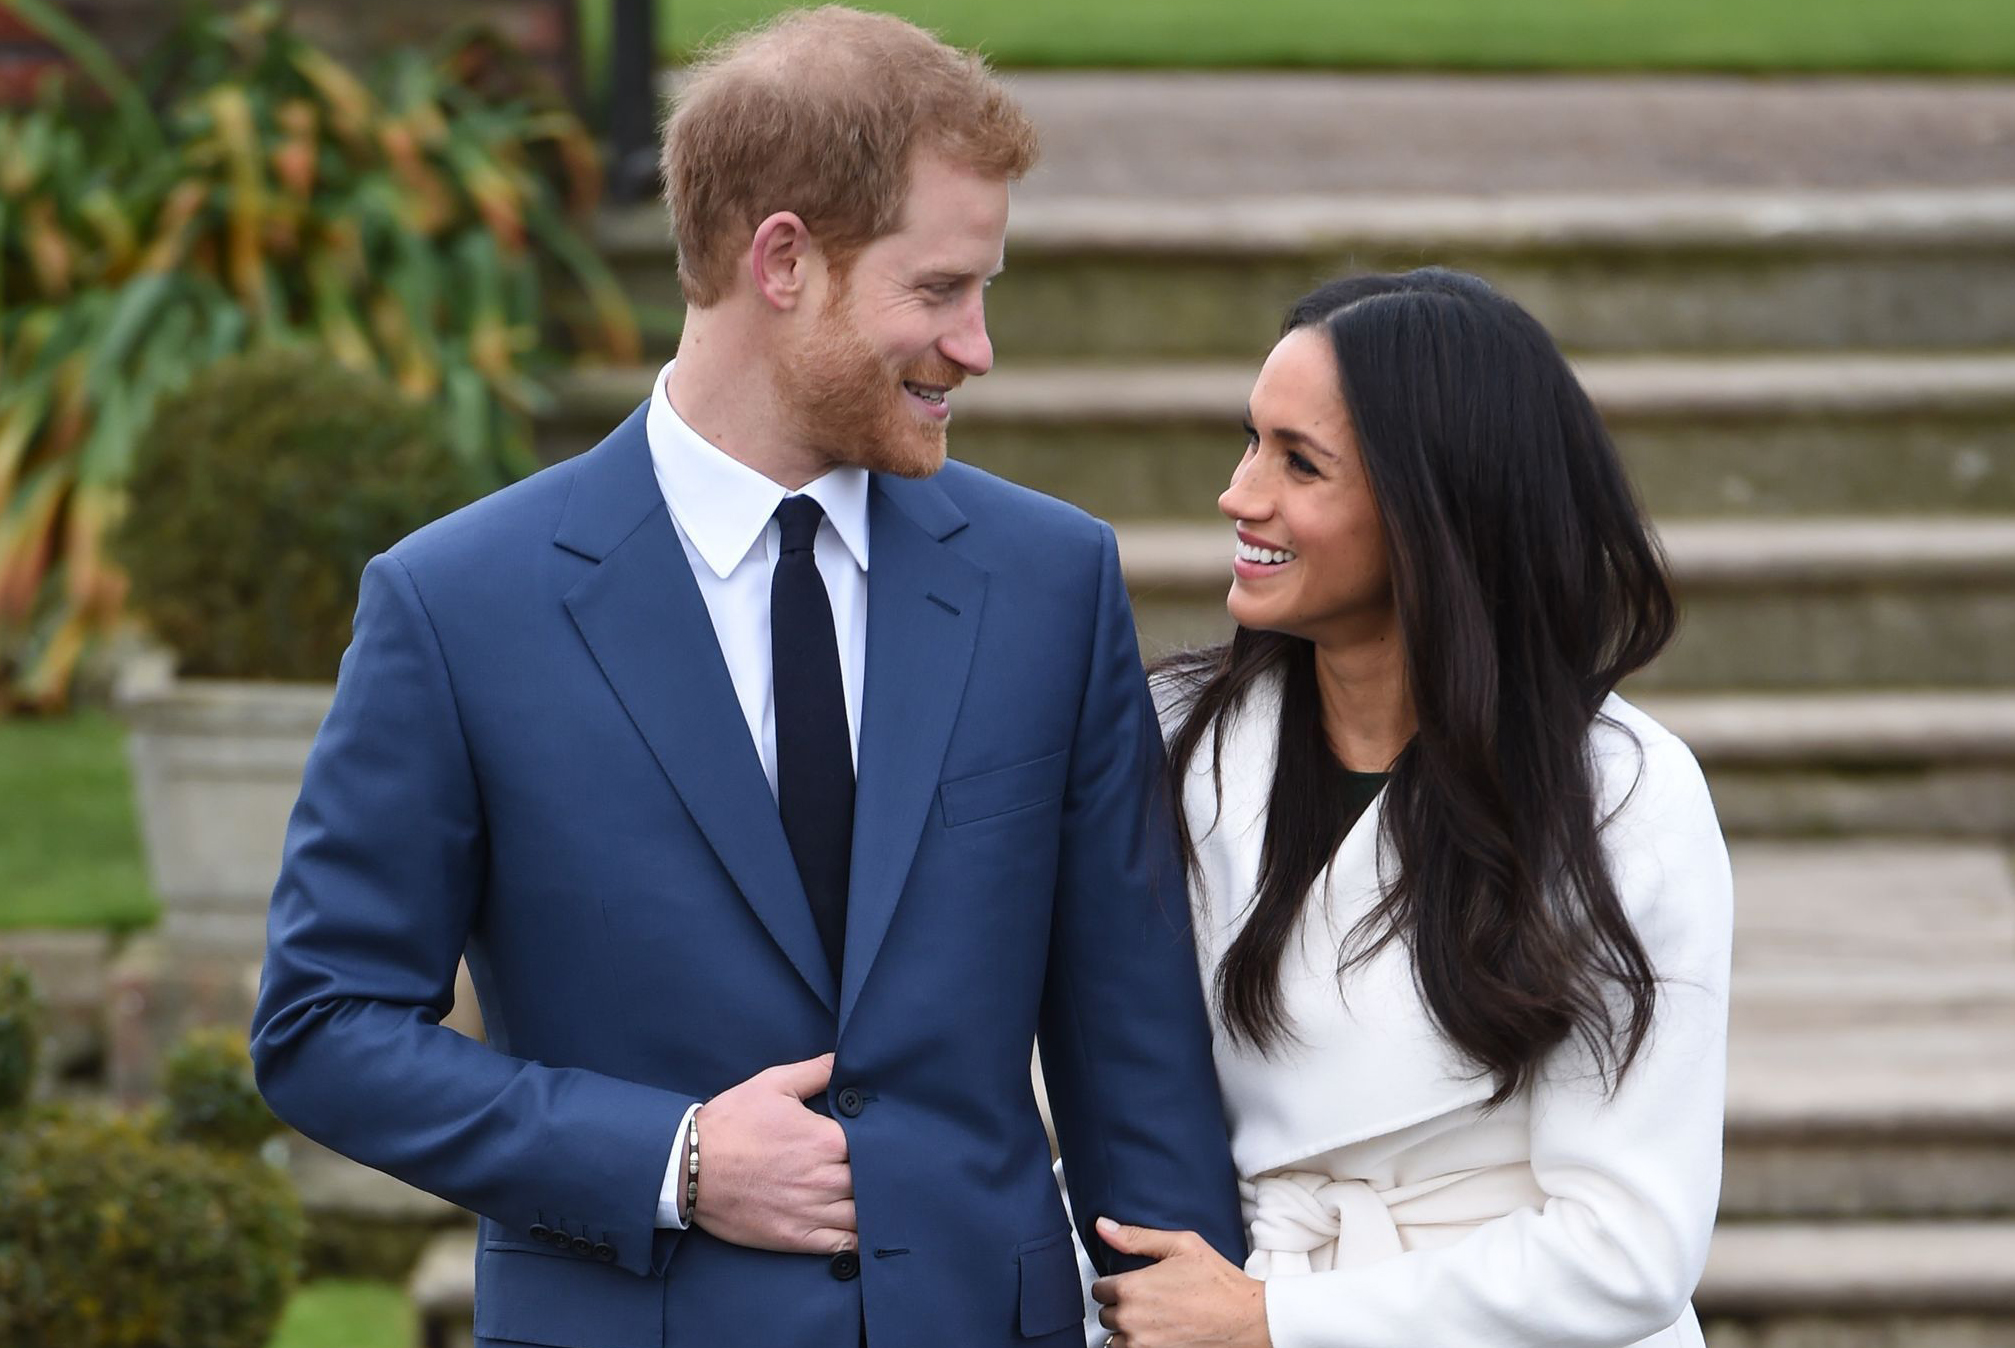 Prince Harry and Meghan Markle in the Sunken Garden at Kensington Palace, London, after the announcement of their engagement.